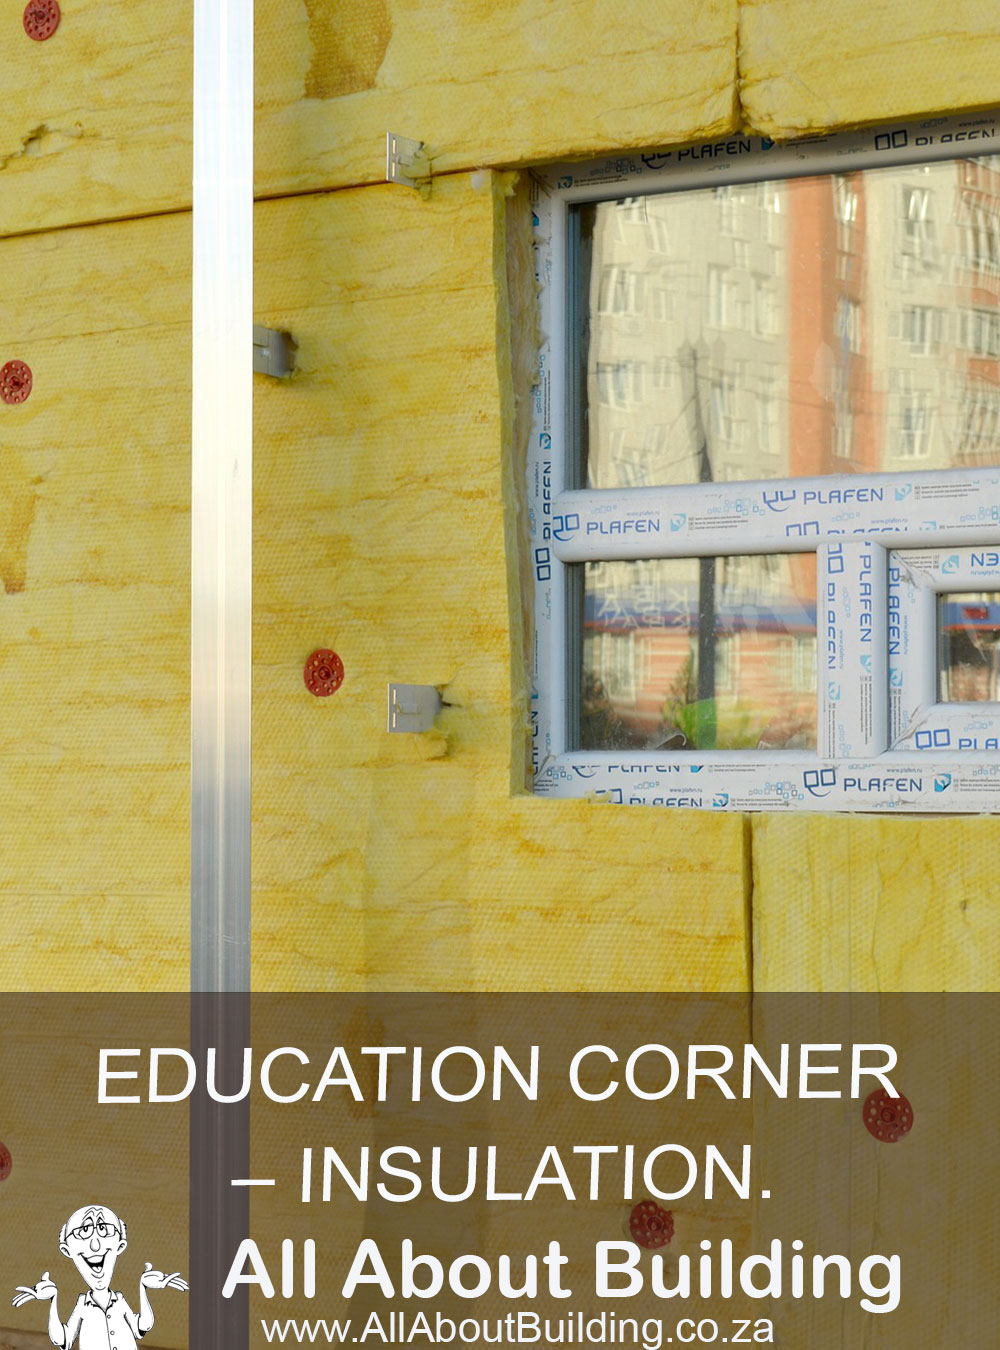 EDUCATION CORNER INSULATION